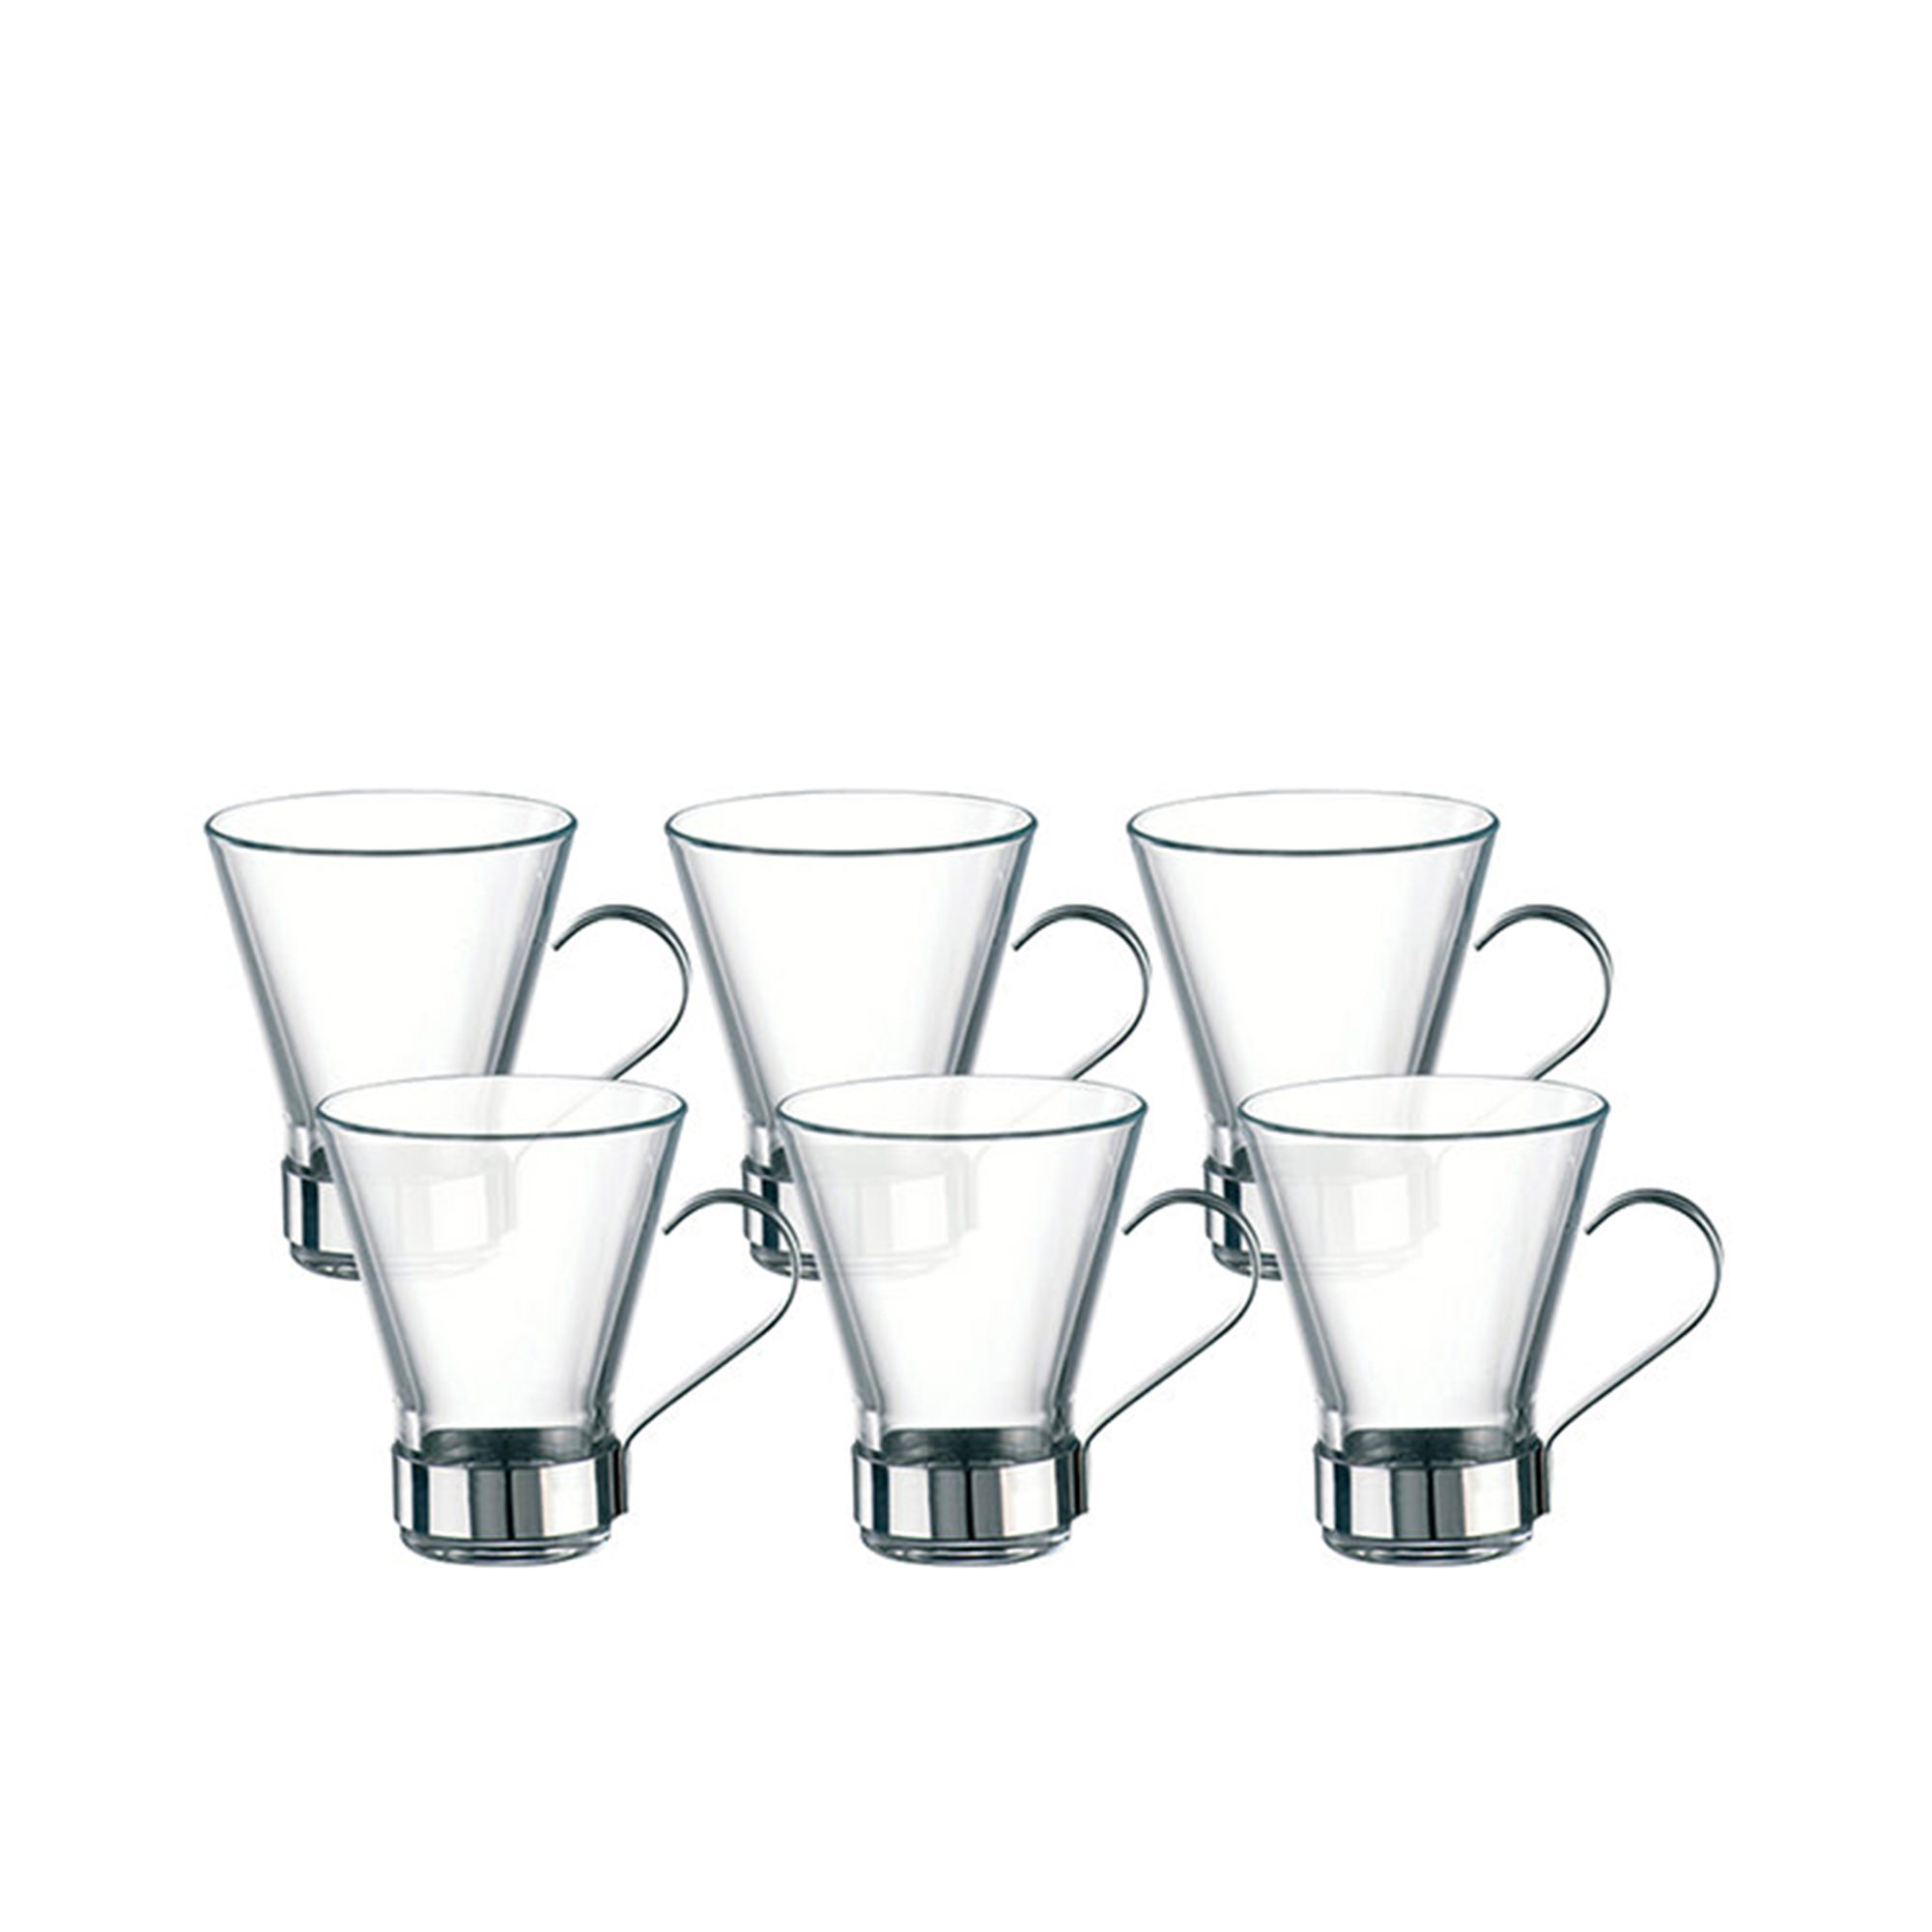 Bormioli Rocco Ypsilon 6pc Cappuccino Cup Set 220ml